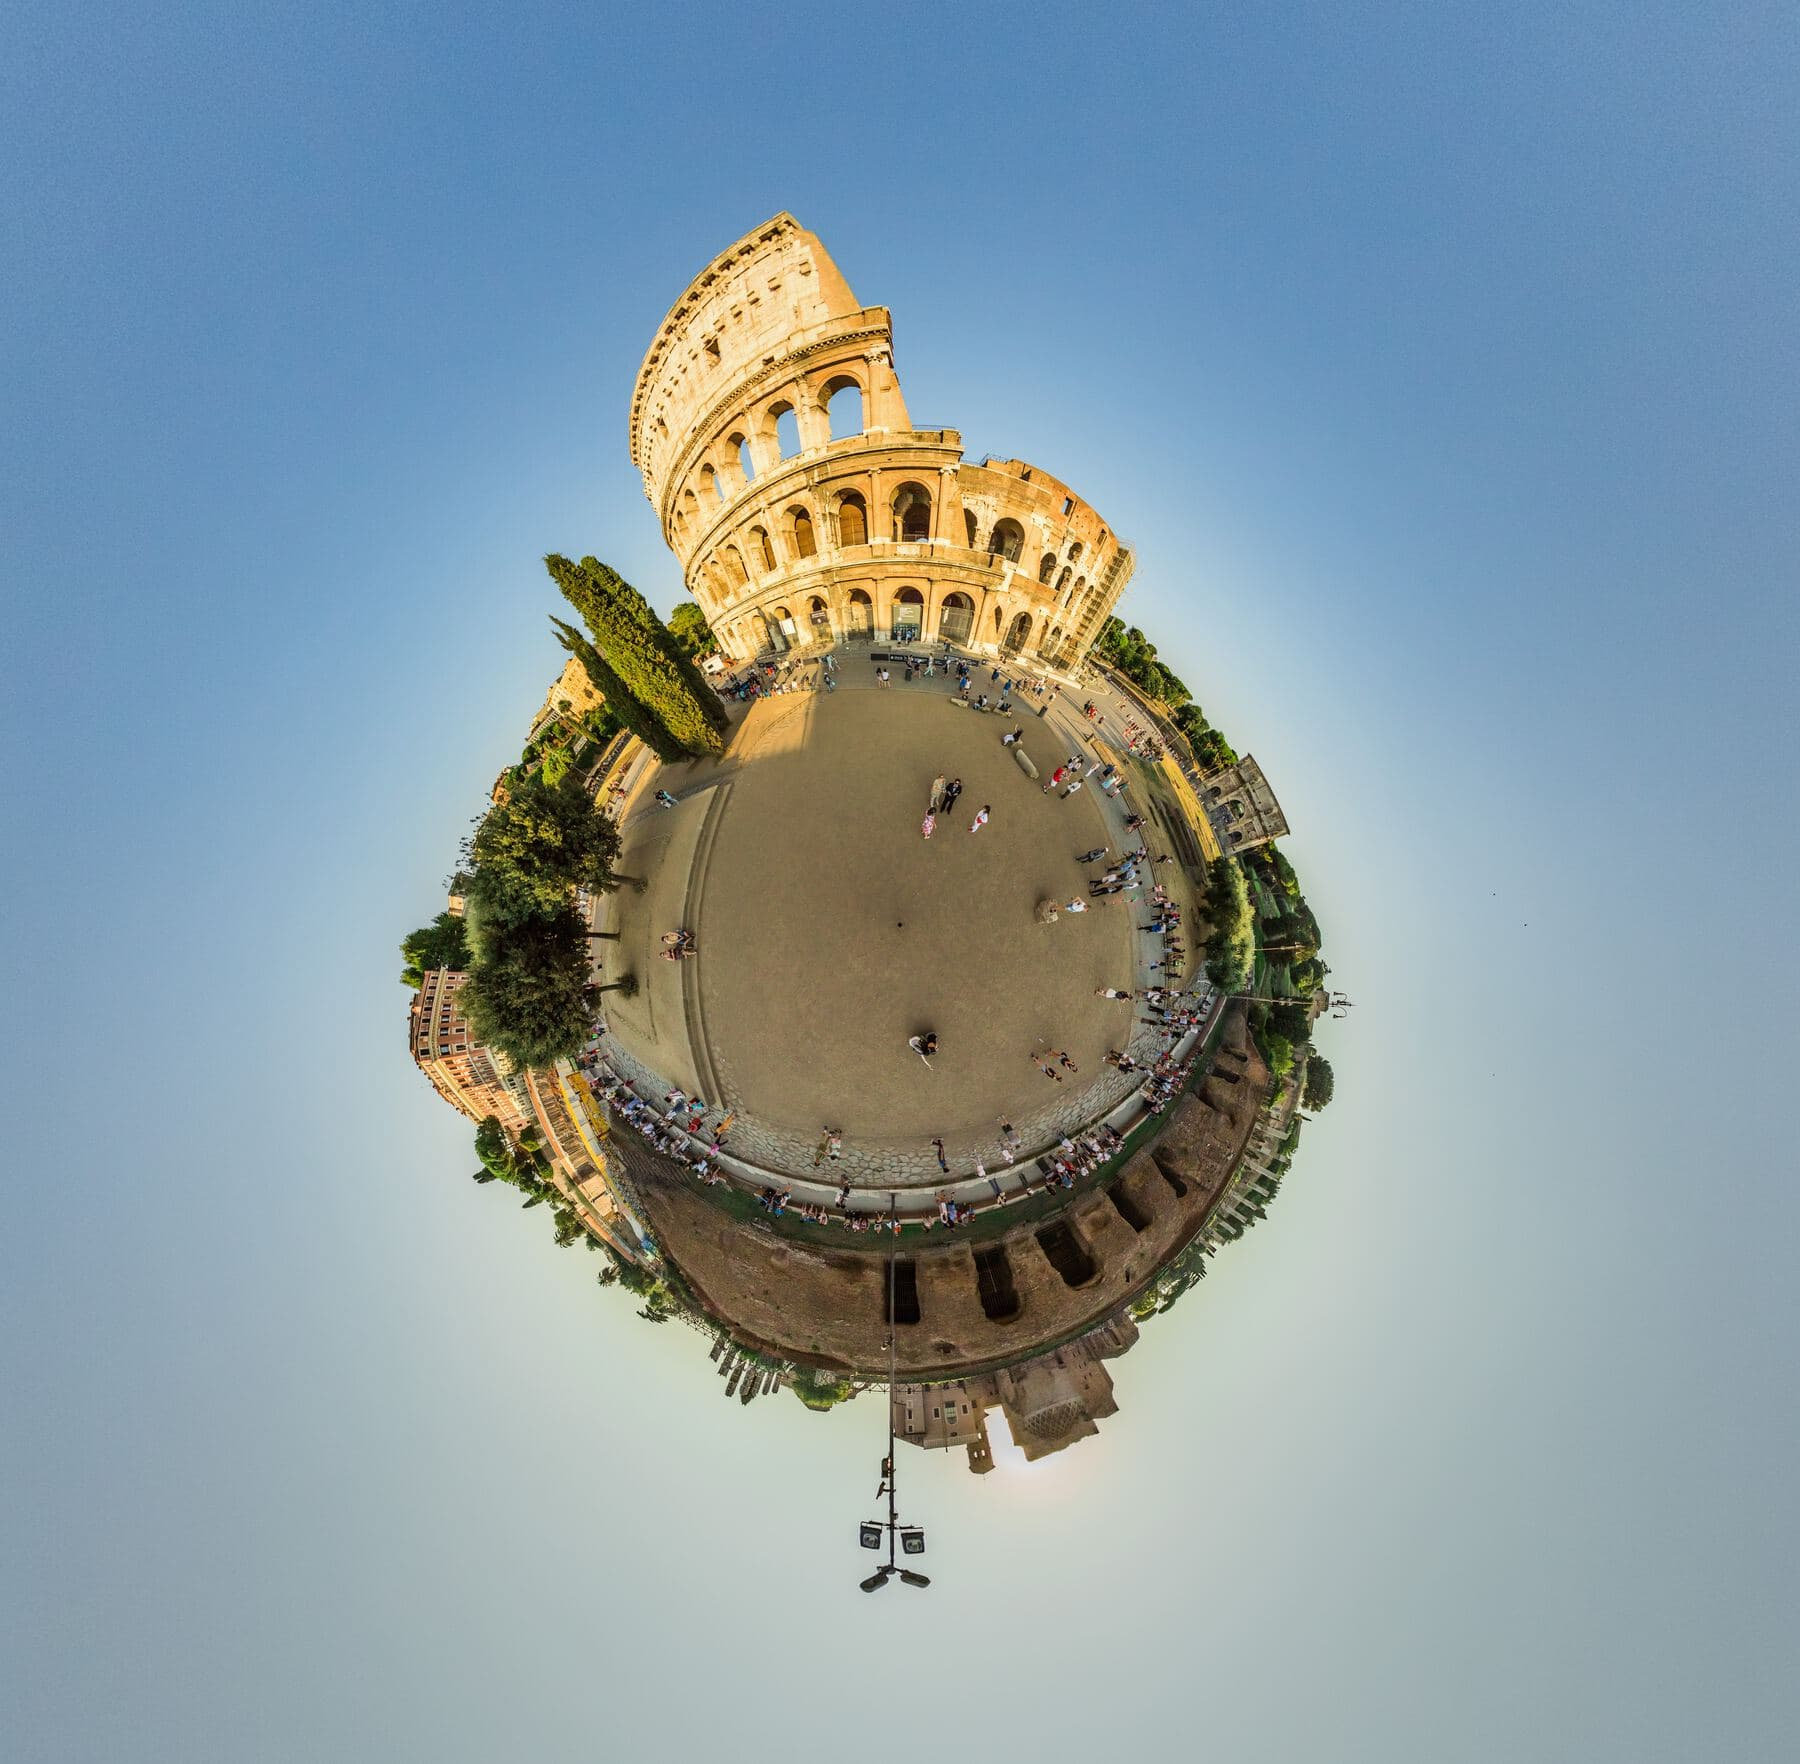 A Tiny World photo of the Colossiumm